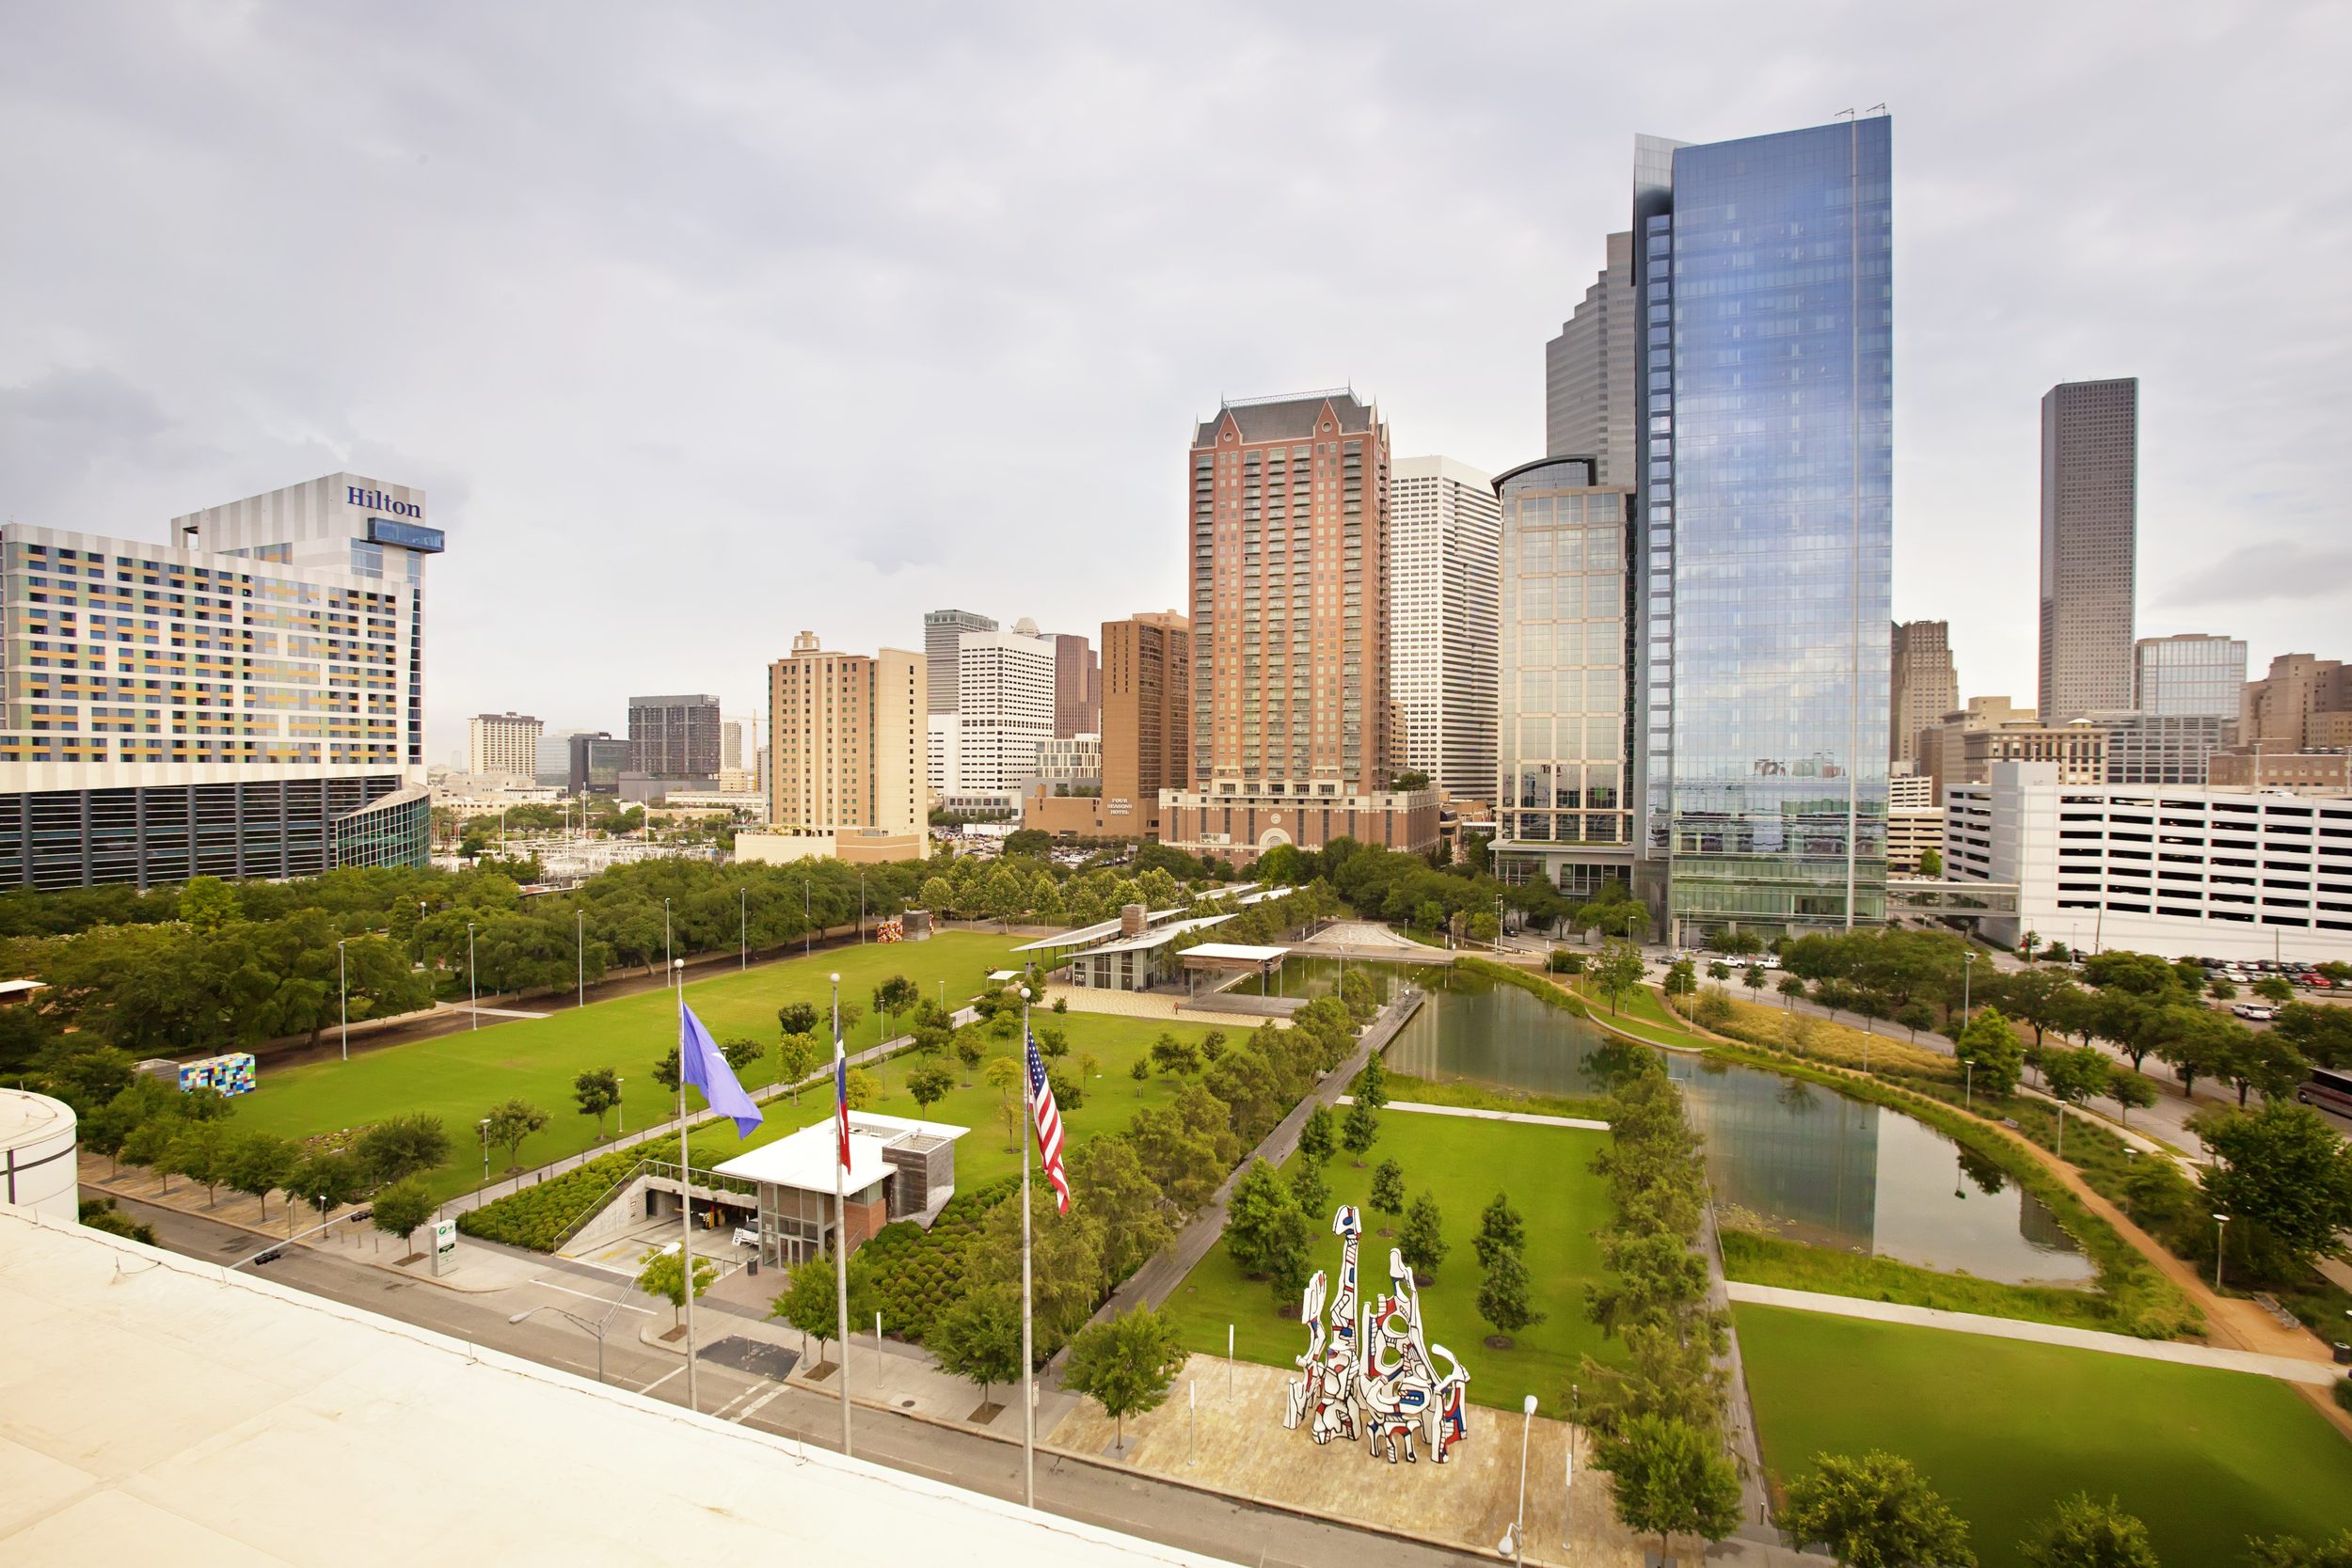 2/Discovery Green